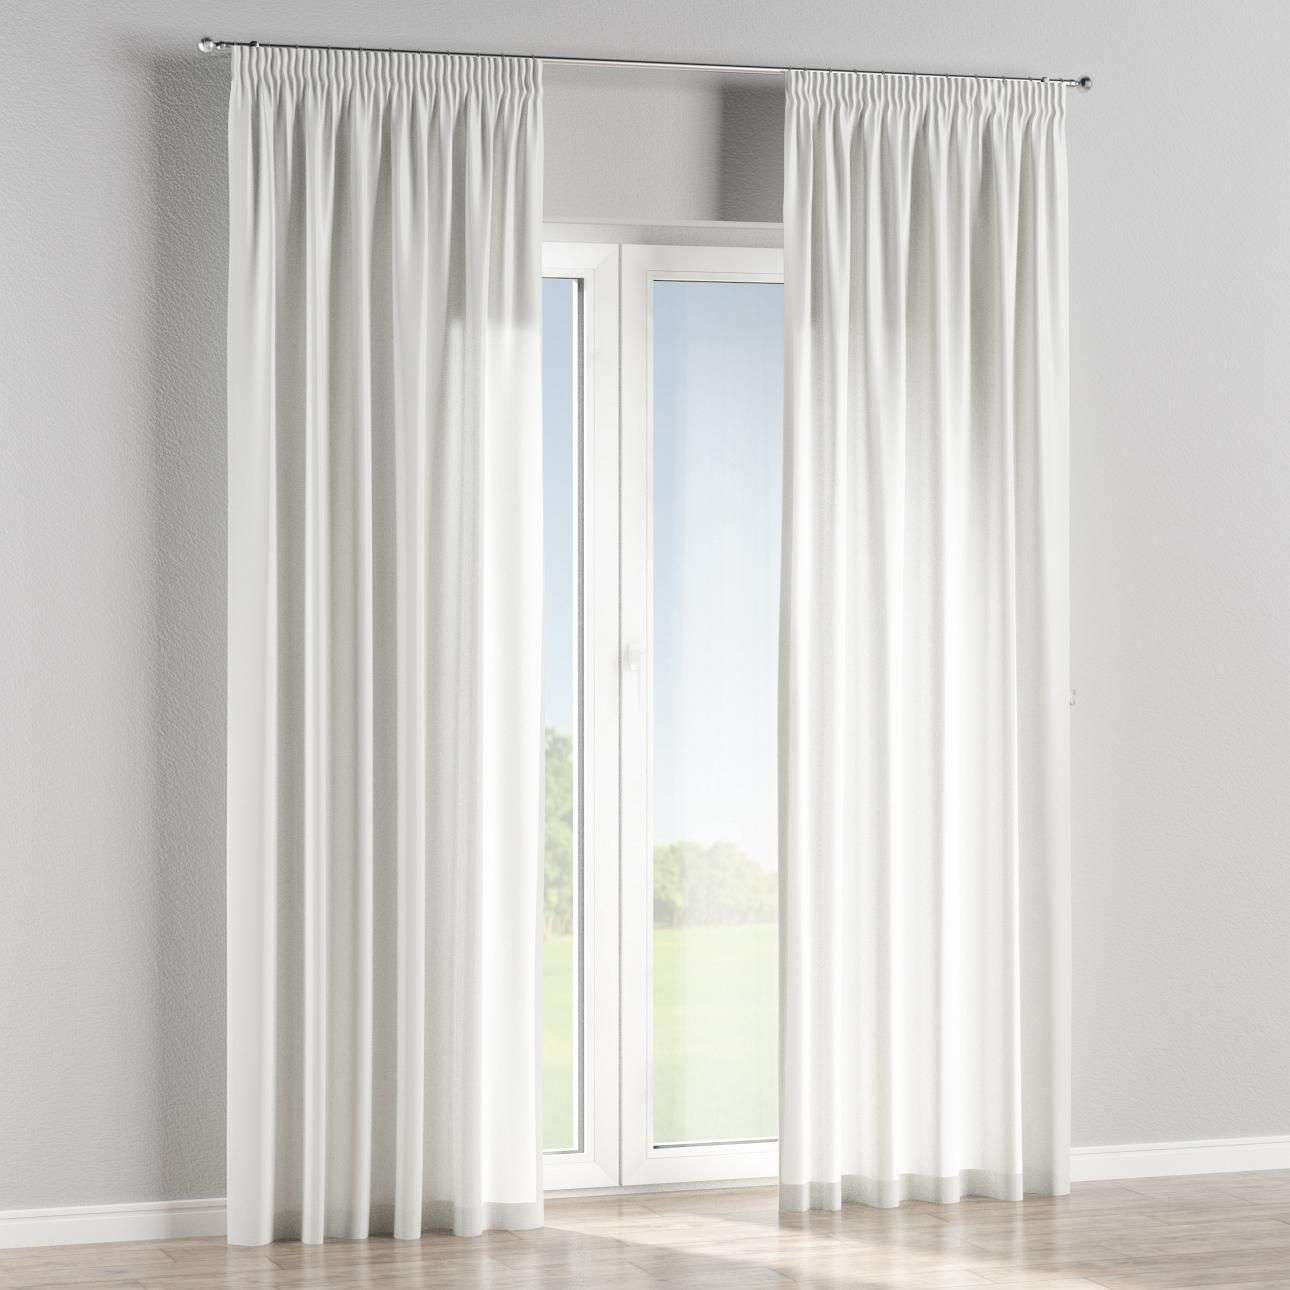 Pencil pleat curtains in collection SALE, fabric: 130-07